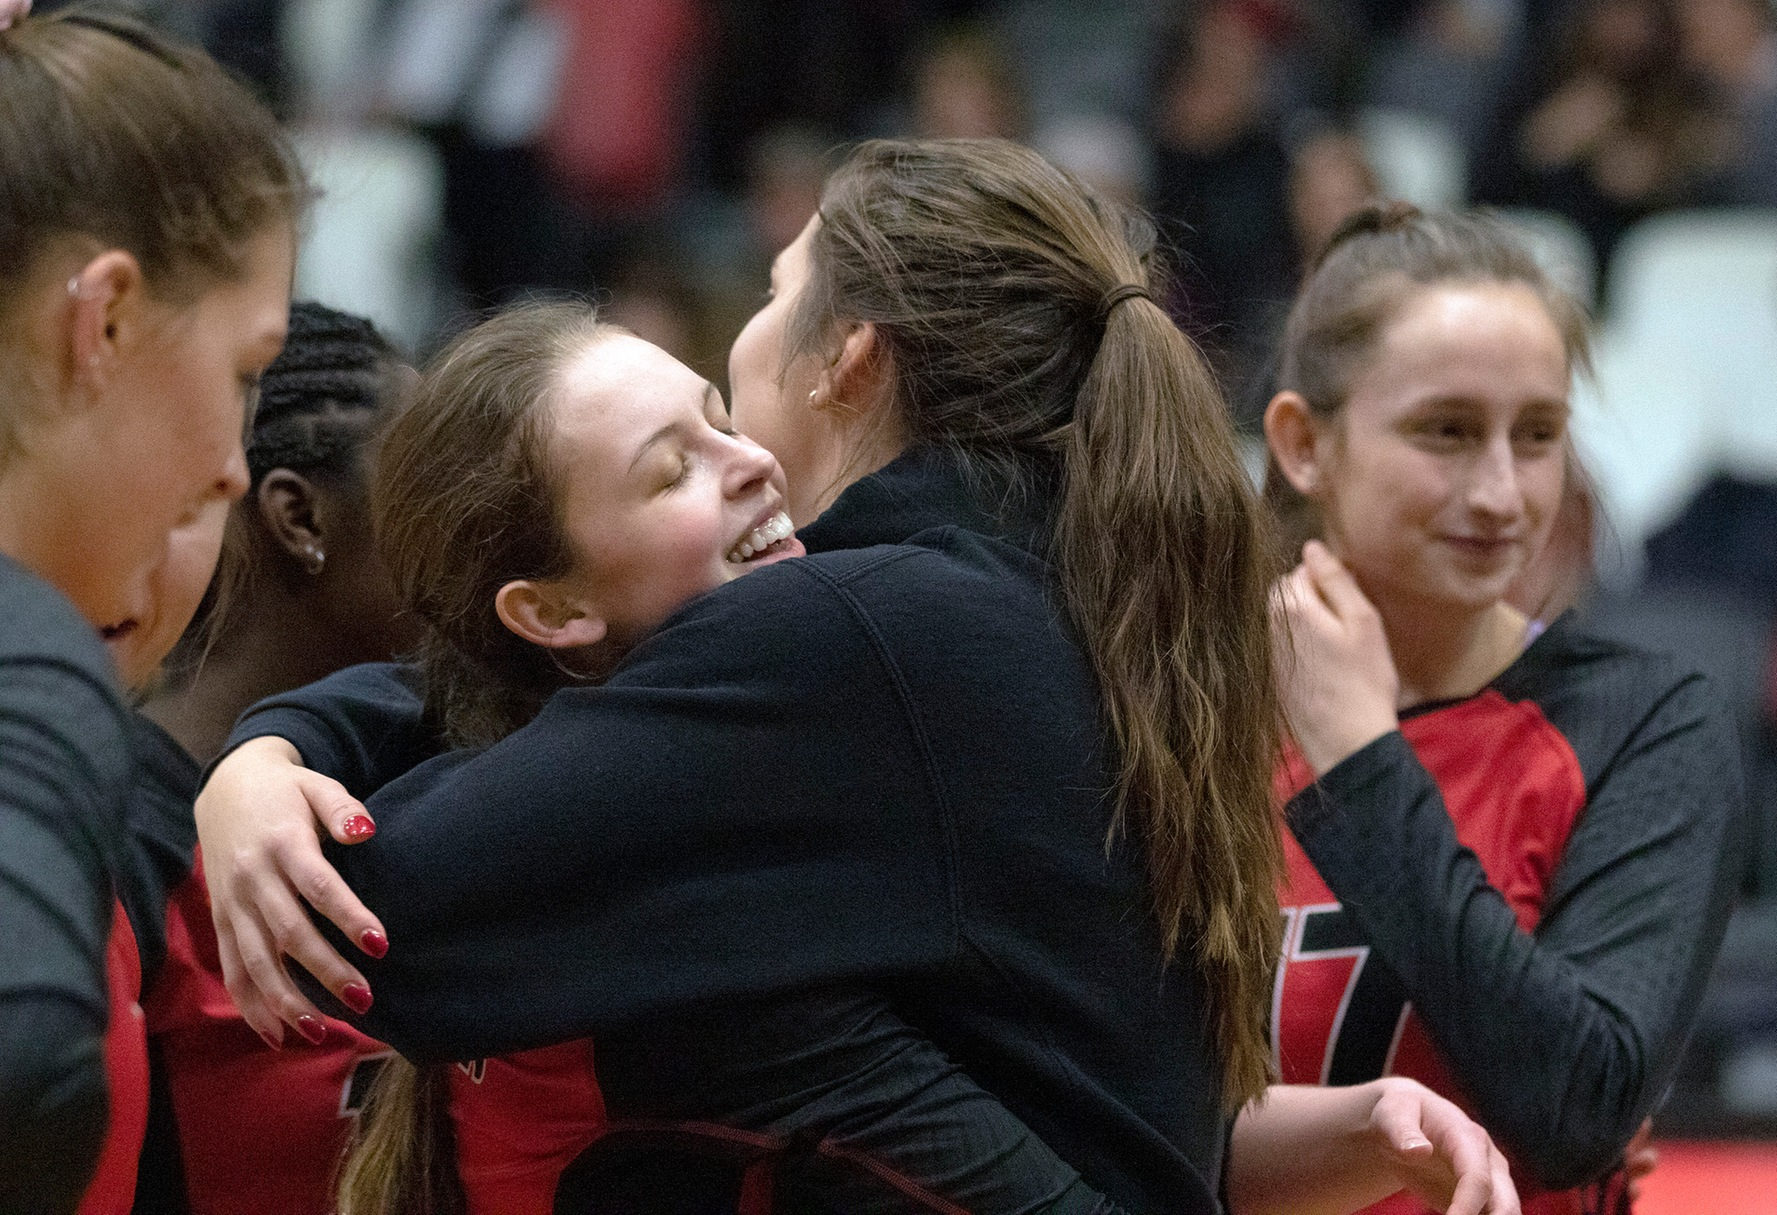 Setter Rylie Dickson celebrates with teammate Taylor Boughton immediately after the Wesmen women's volleyball team captured the 53rd annual Wesmen Classic on Monday, Dec. 30, 2019. (David Larkins/Wesmen Classic)